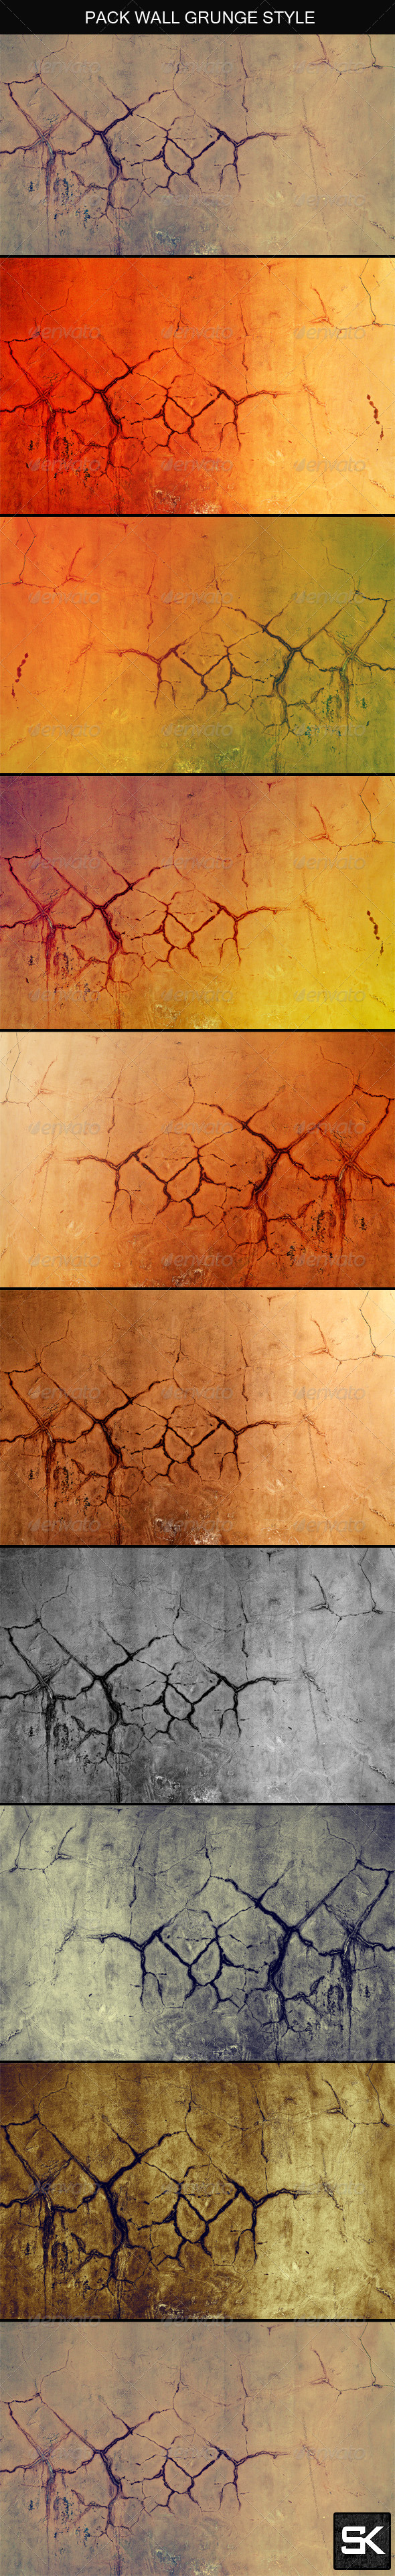 Wall Grunge Style - Concrete Textures